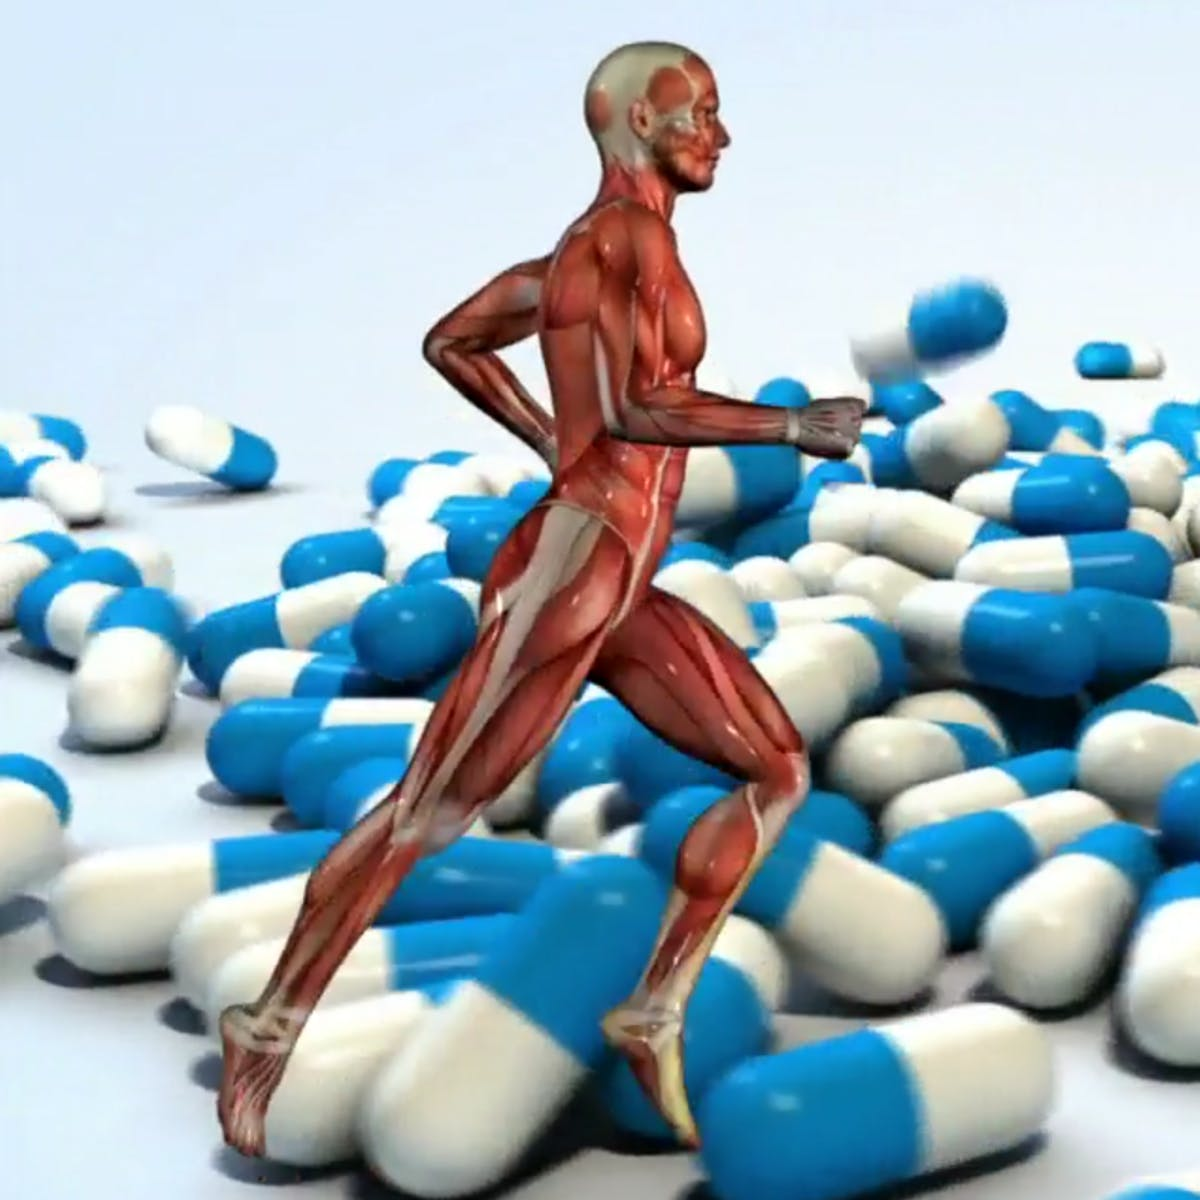 Doping: Sports, Organizations and Sciences